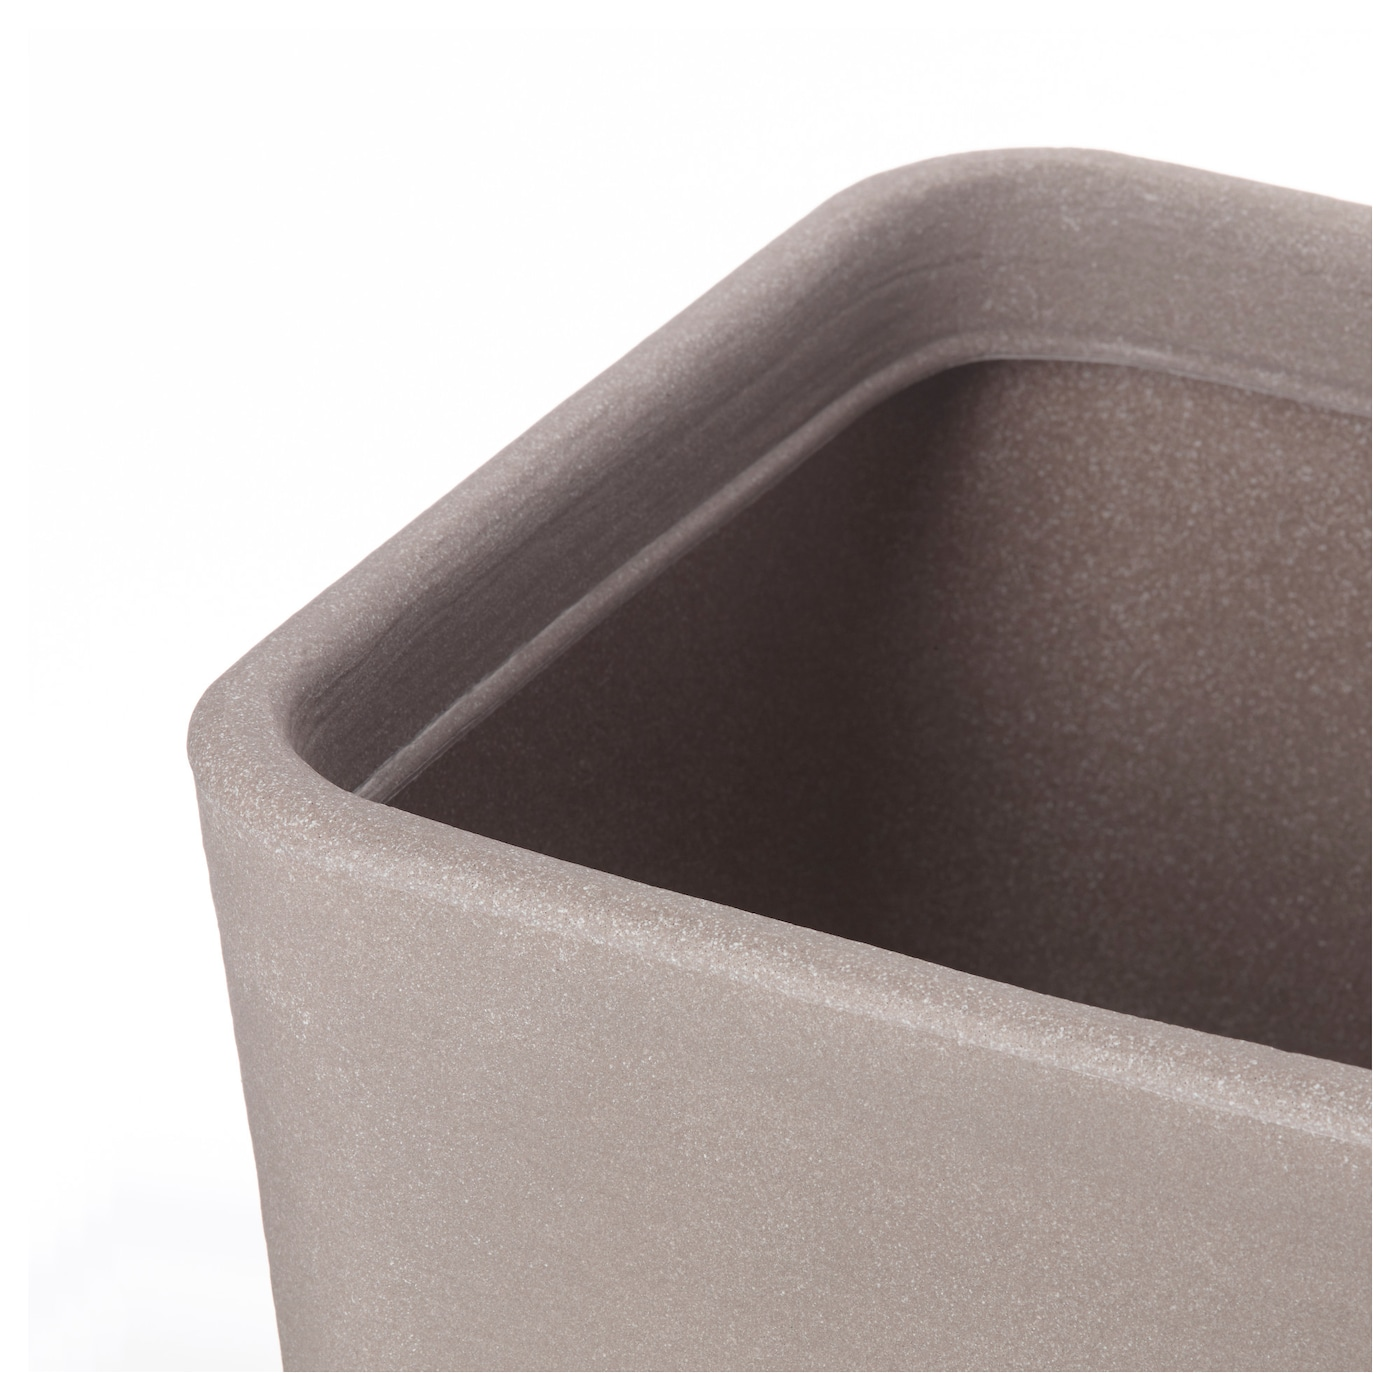 Stlig cache pot int rieur ext rieur beige 37x37 cm ikea for Cache pot interieur